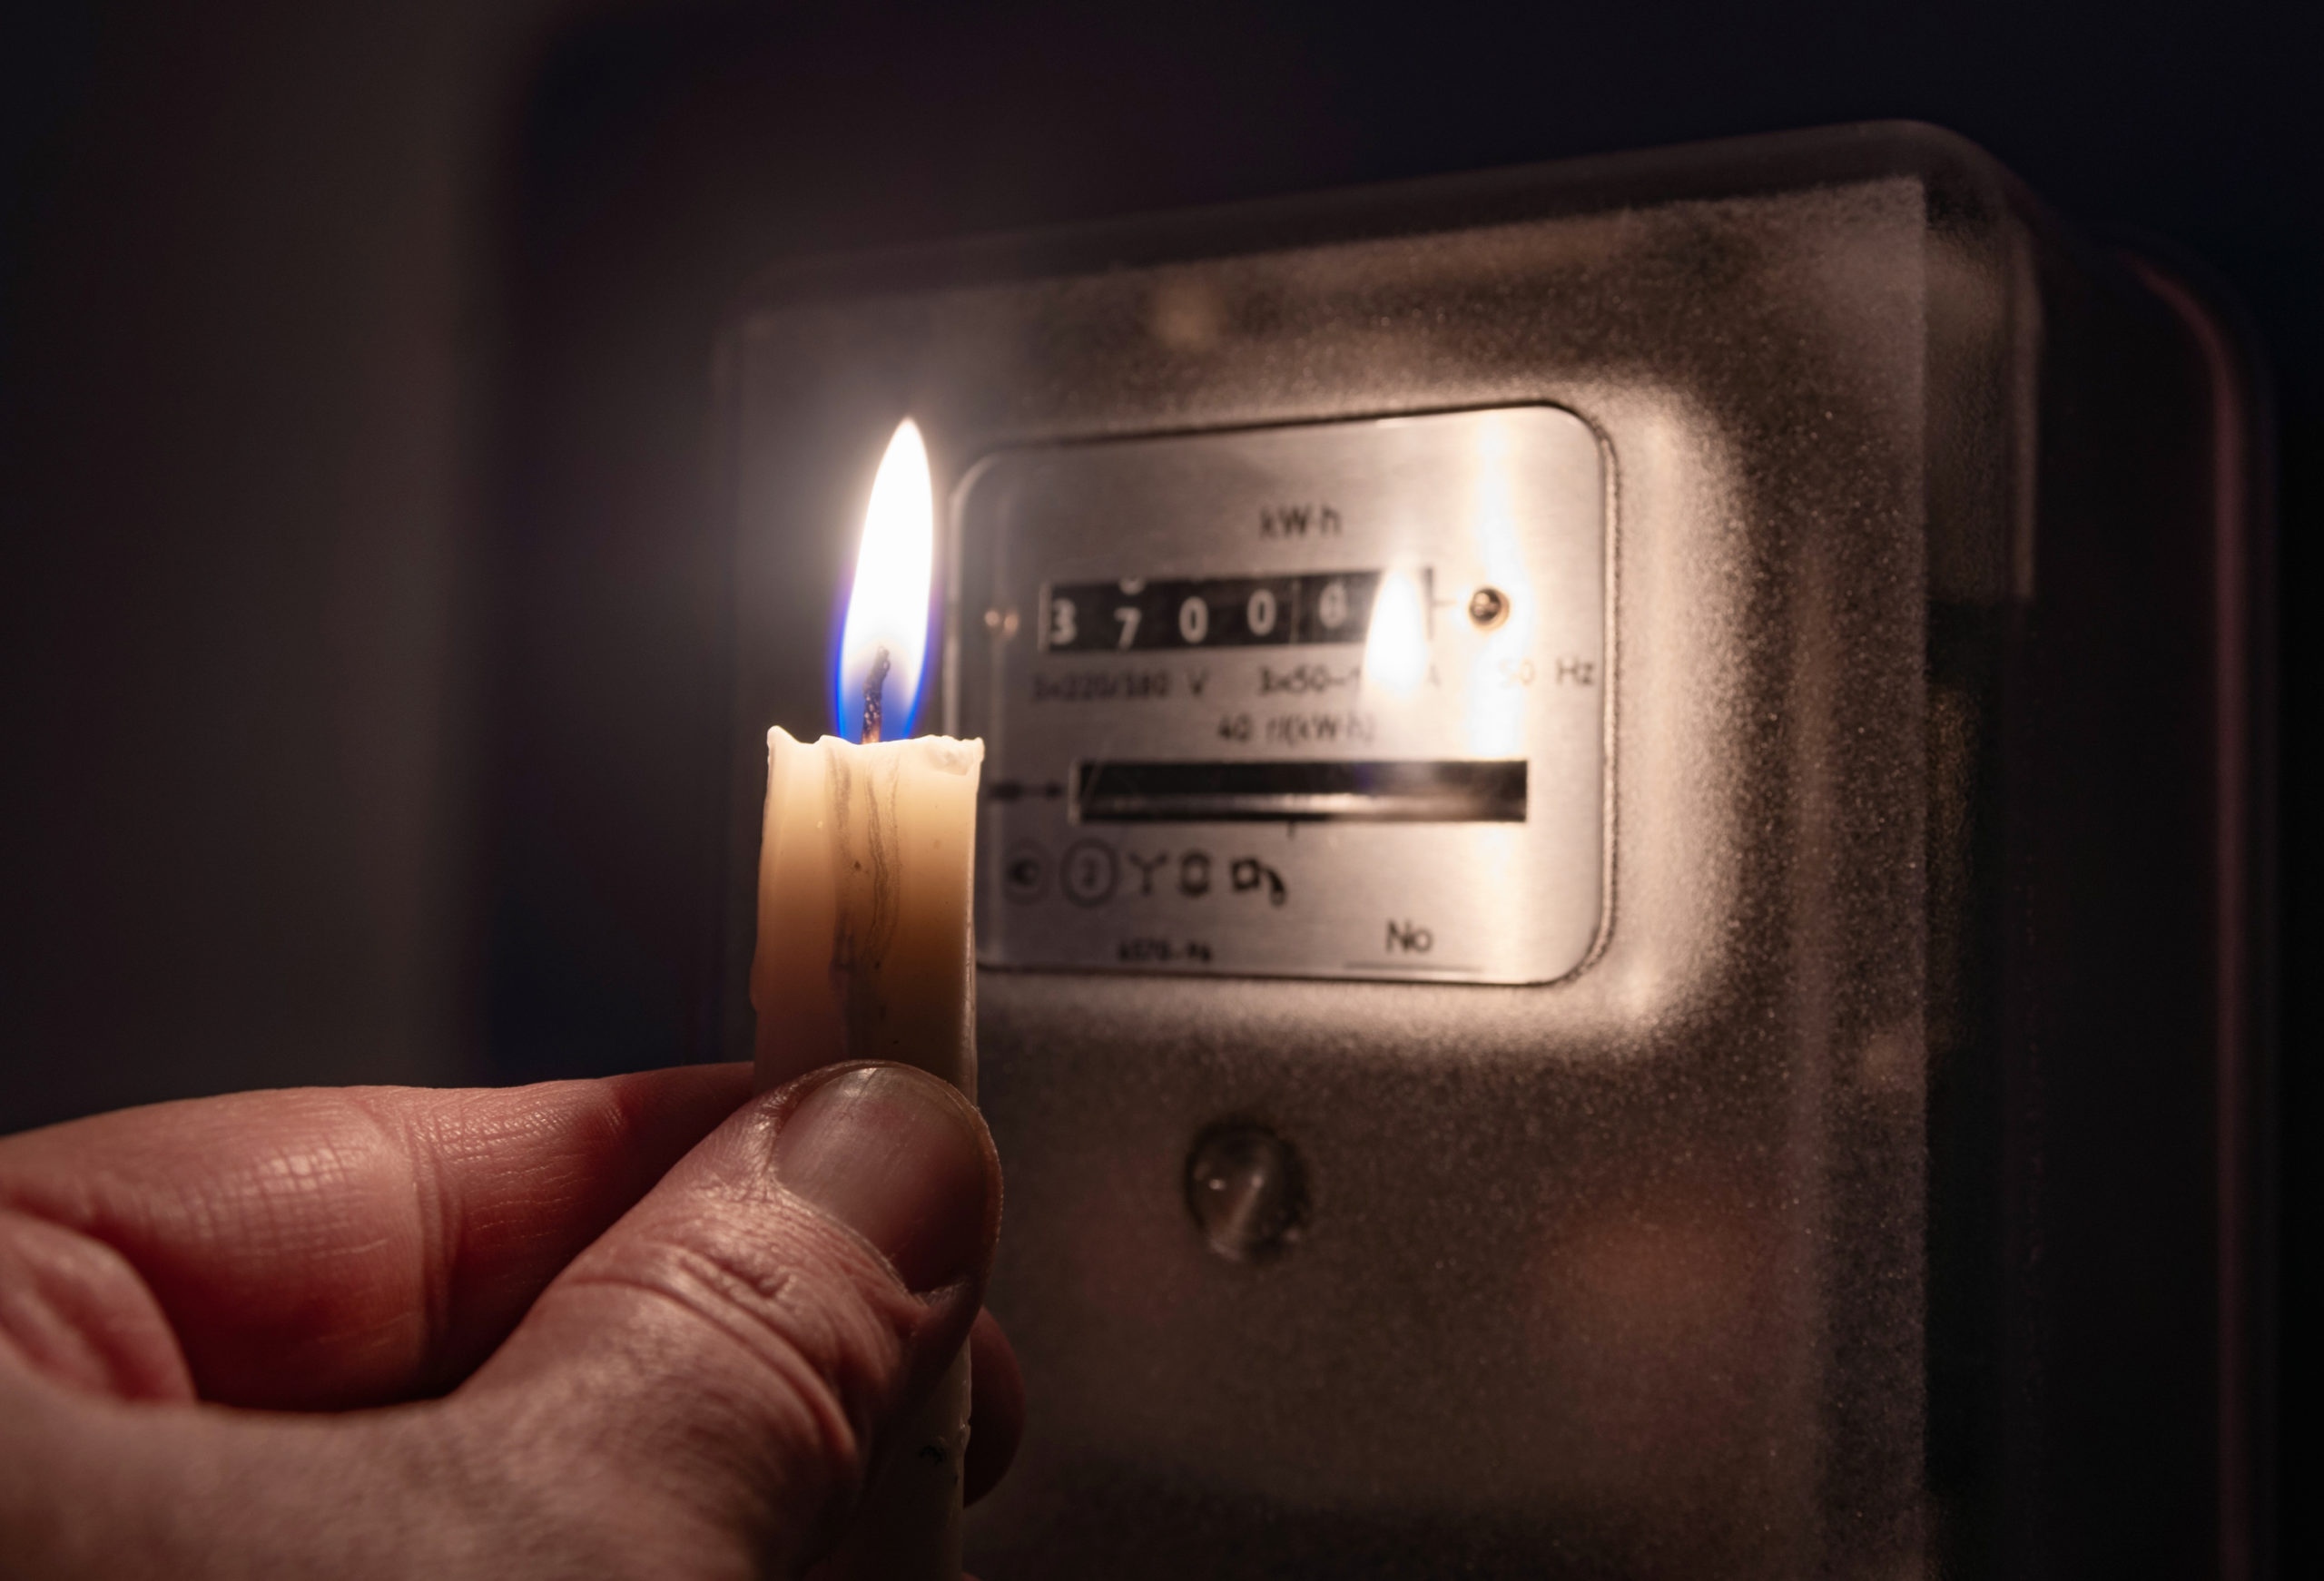 power outage business interruption insurance